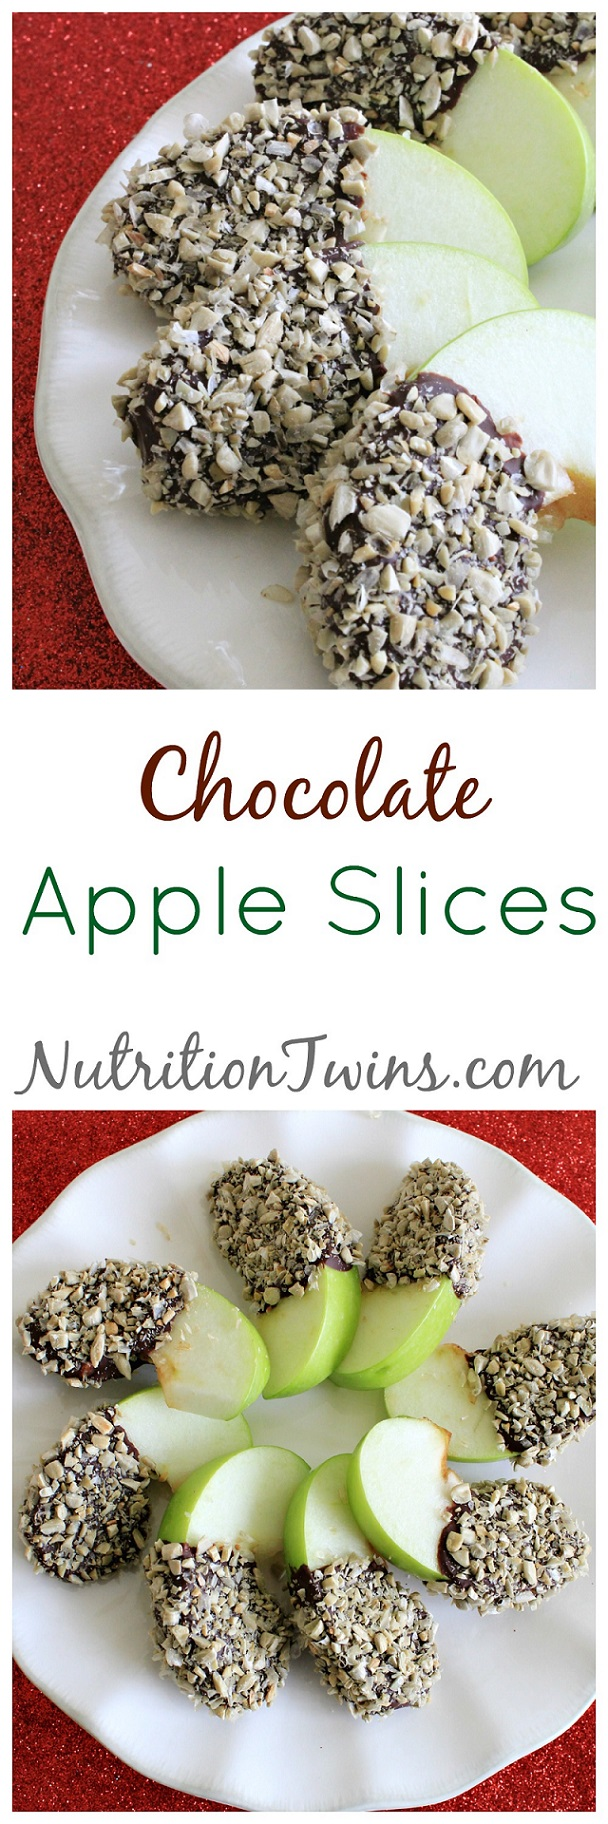 chocolate_apple_slices_colloage